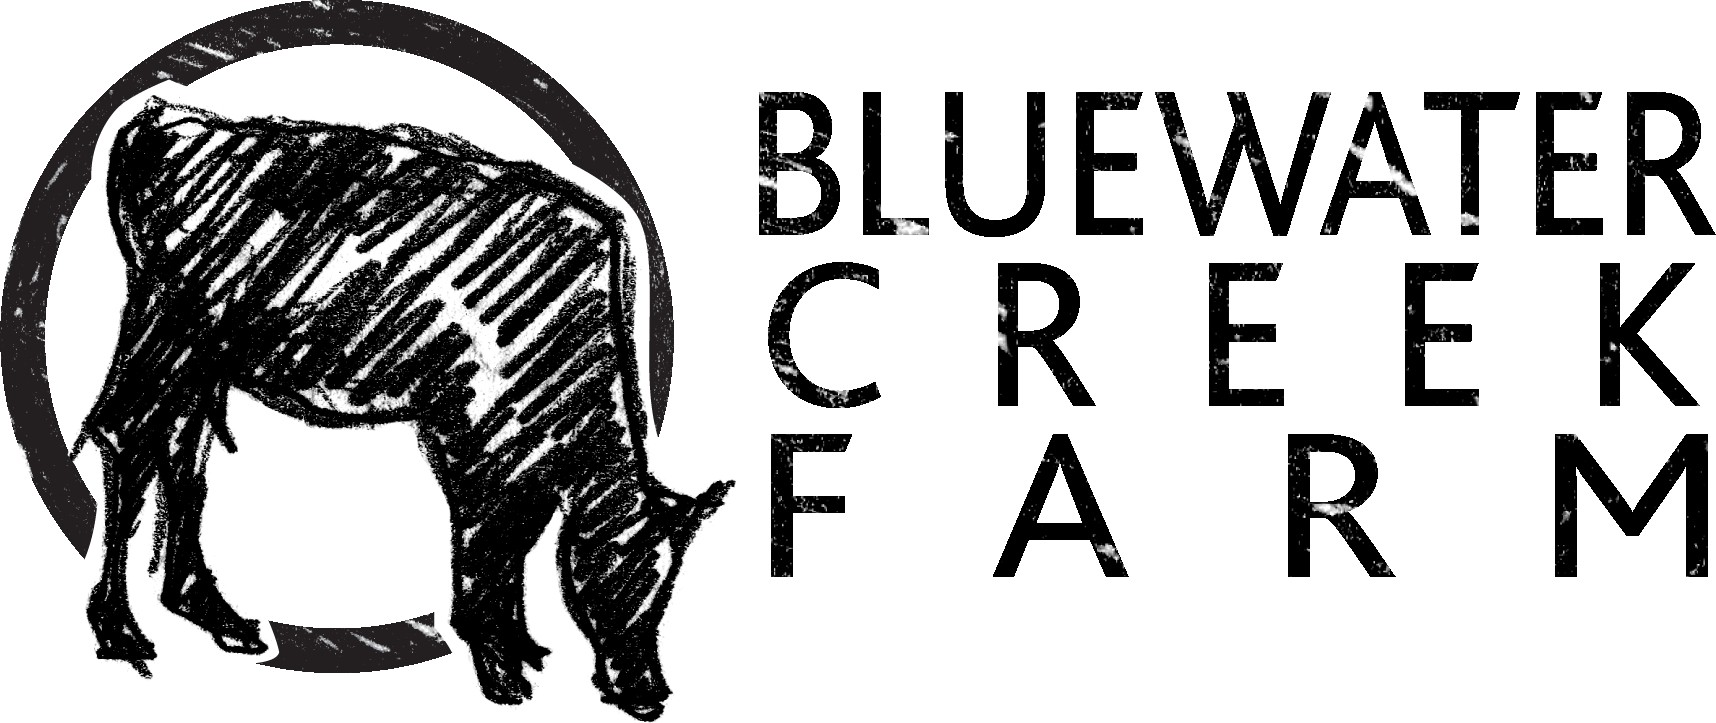 Bluewater Creek Farm Logo